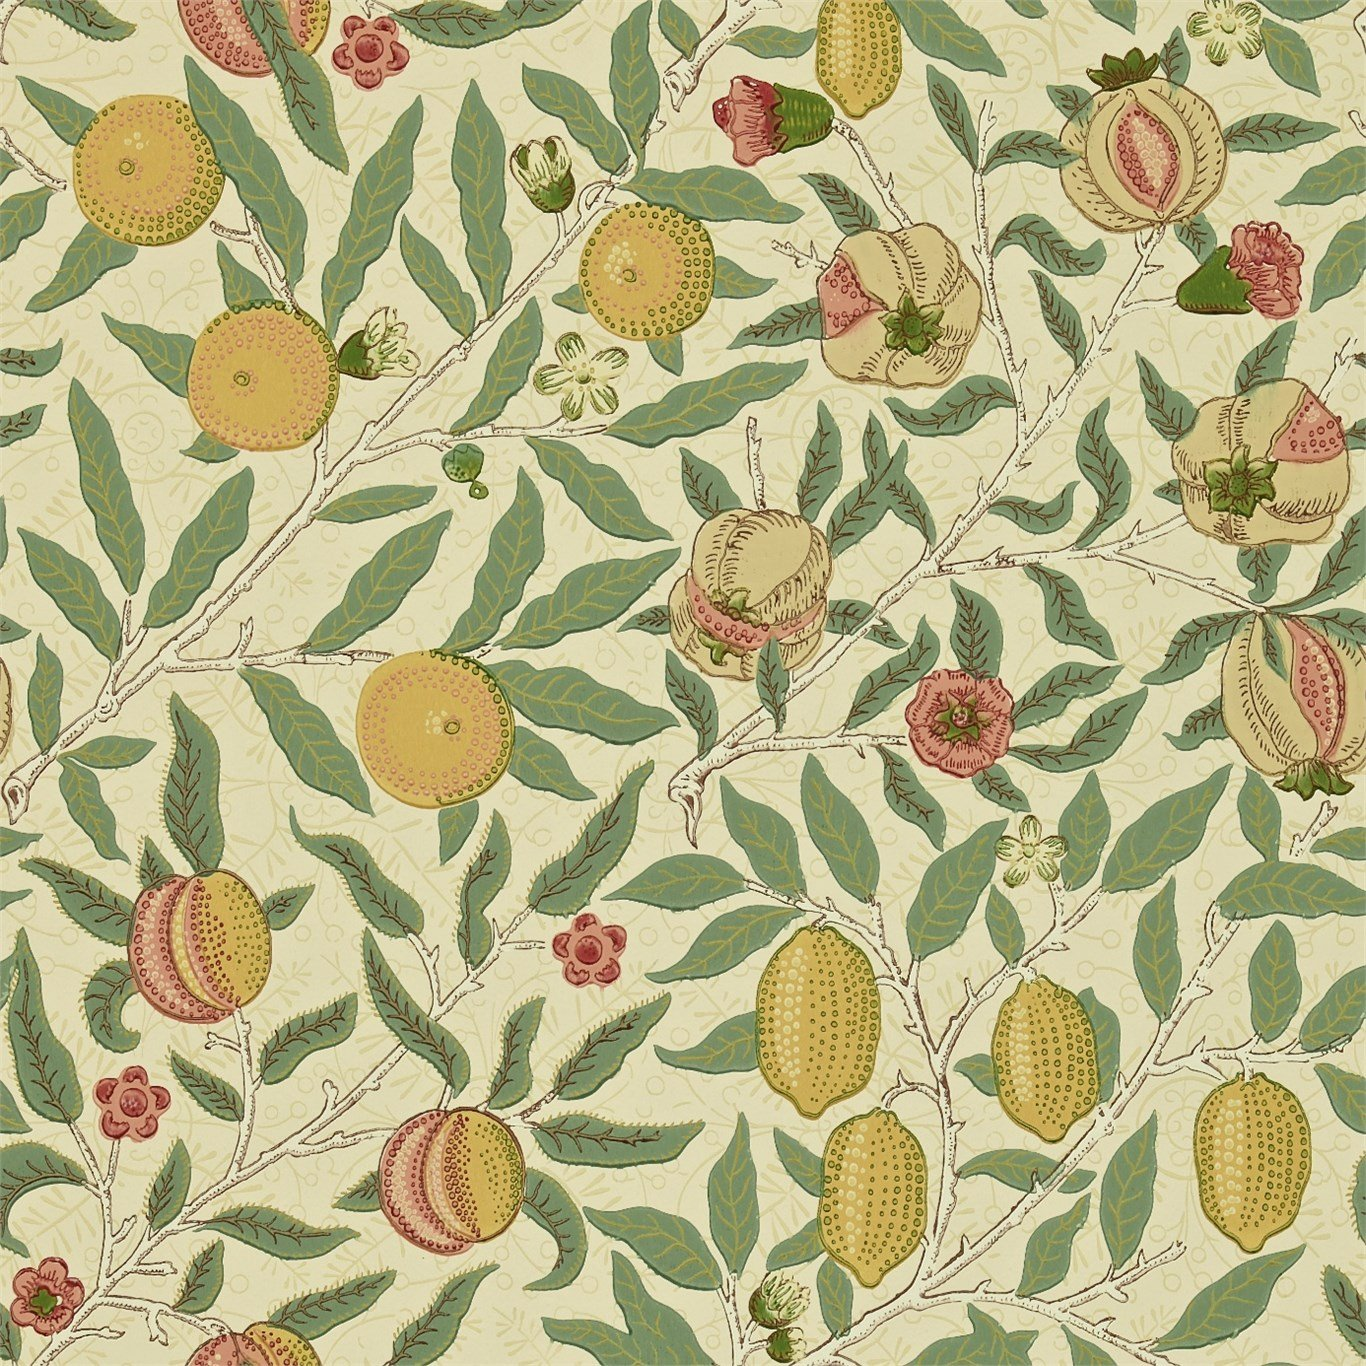 Free Download The Original Morris Co Arts And Crafts Fabrics And Wallpaper 1366x1366 For Your Desktop Mobile Tablet Explore 50 Arts Crafts Wallpaper William Morris Reproduction Wallpaper William Morris